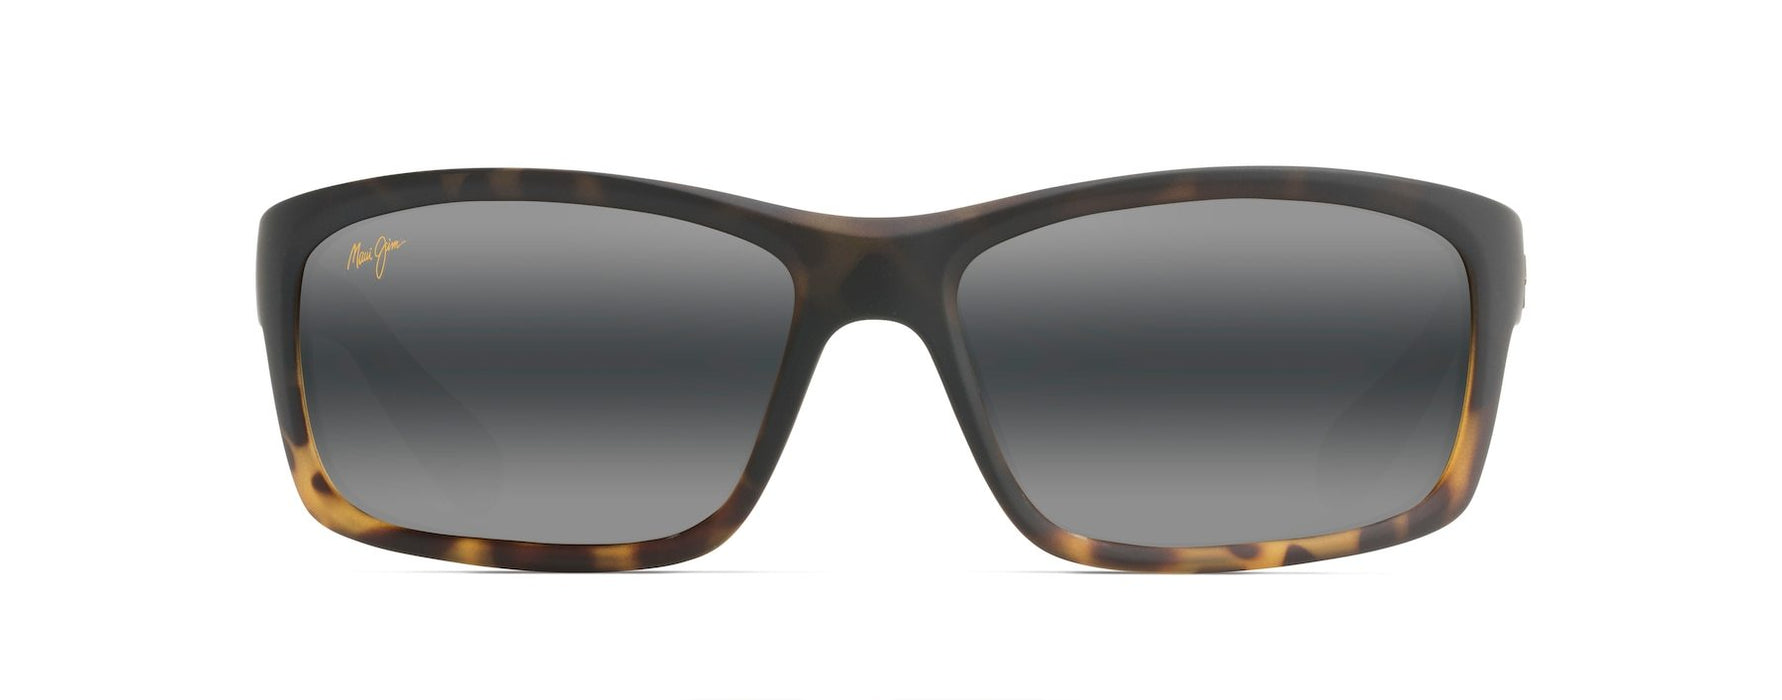 MyMaui Kanaio Coast MM766-007 Sunglasses